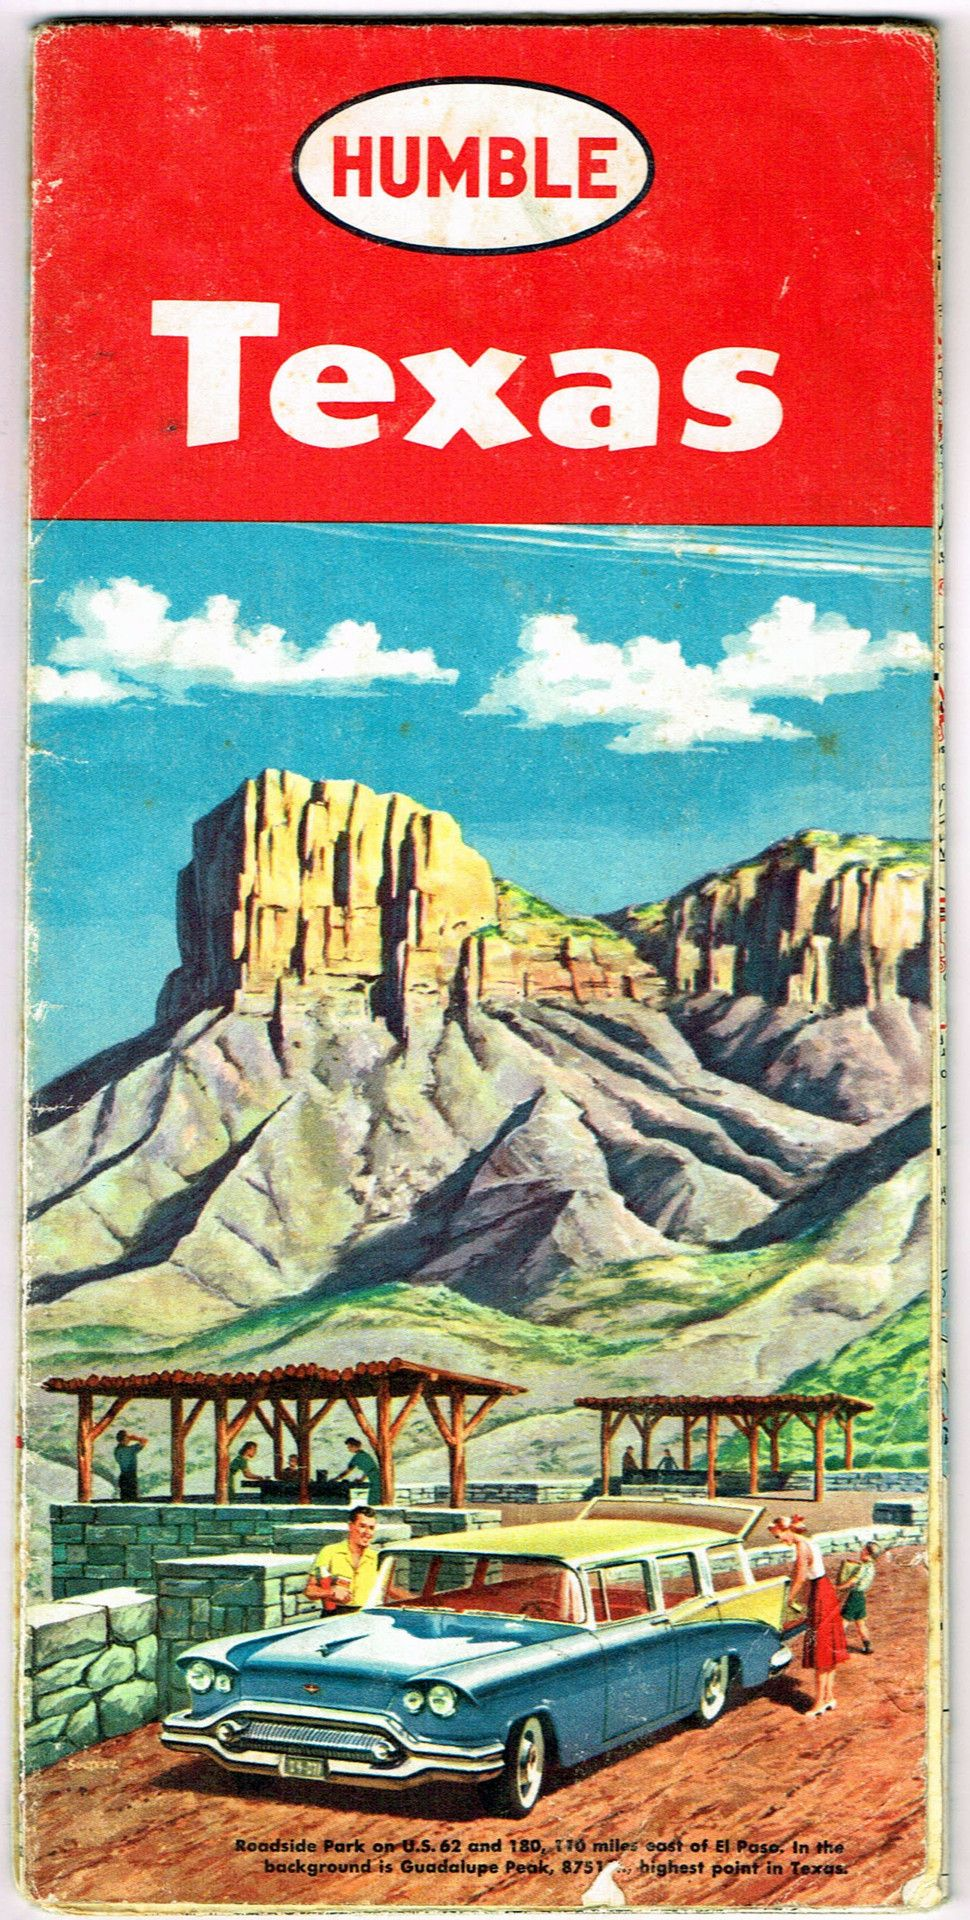 Texas Road Map From Humble Oil  From The Past Pinterest - Road map texas usa